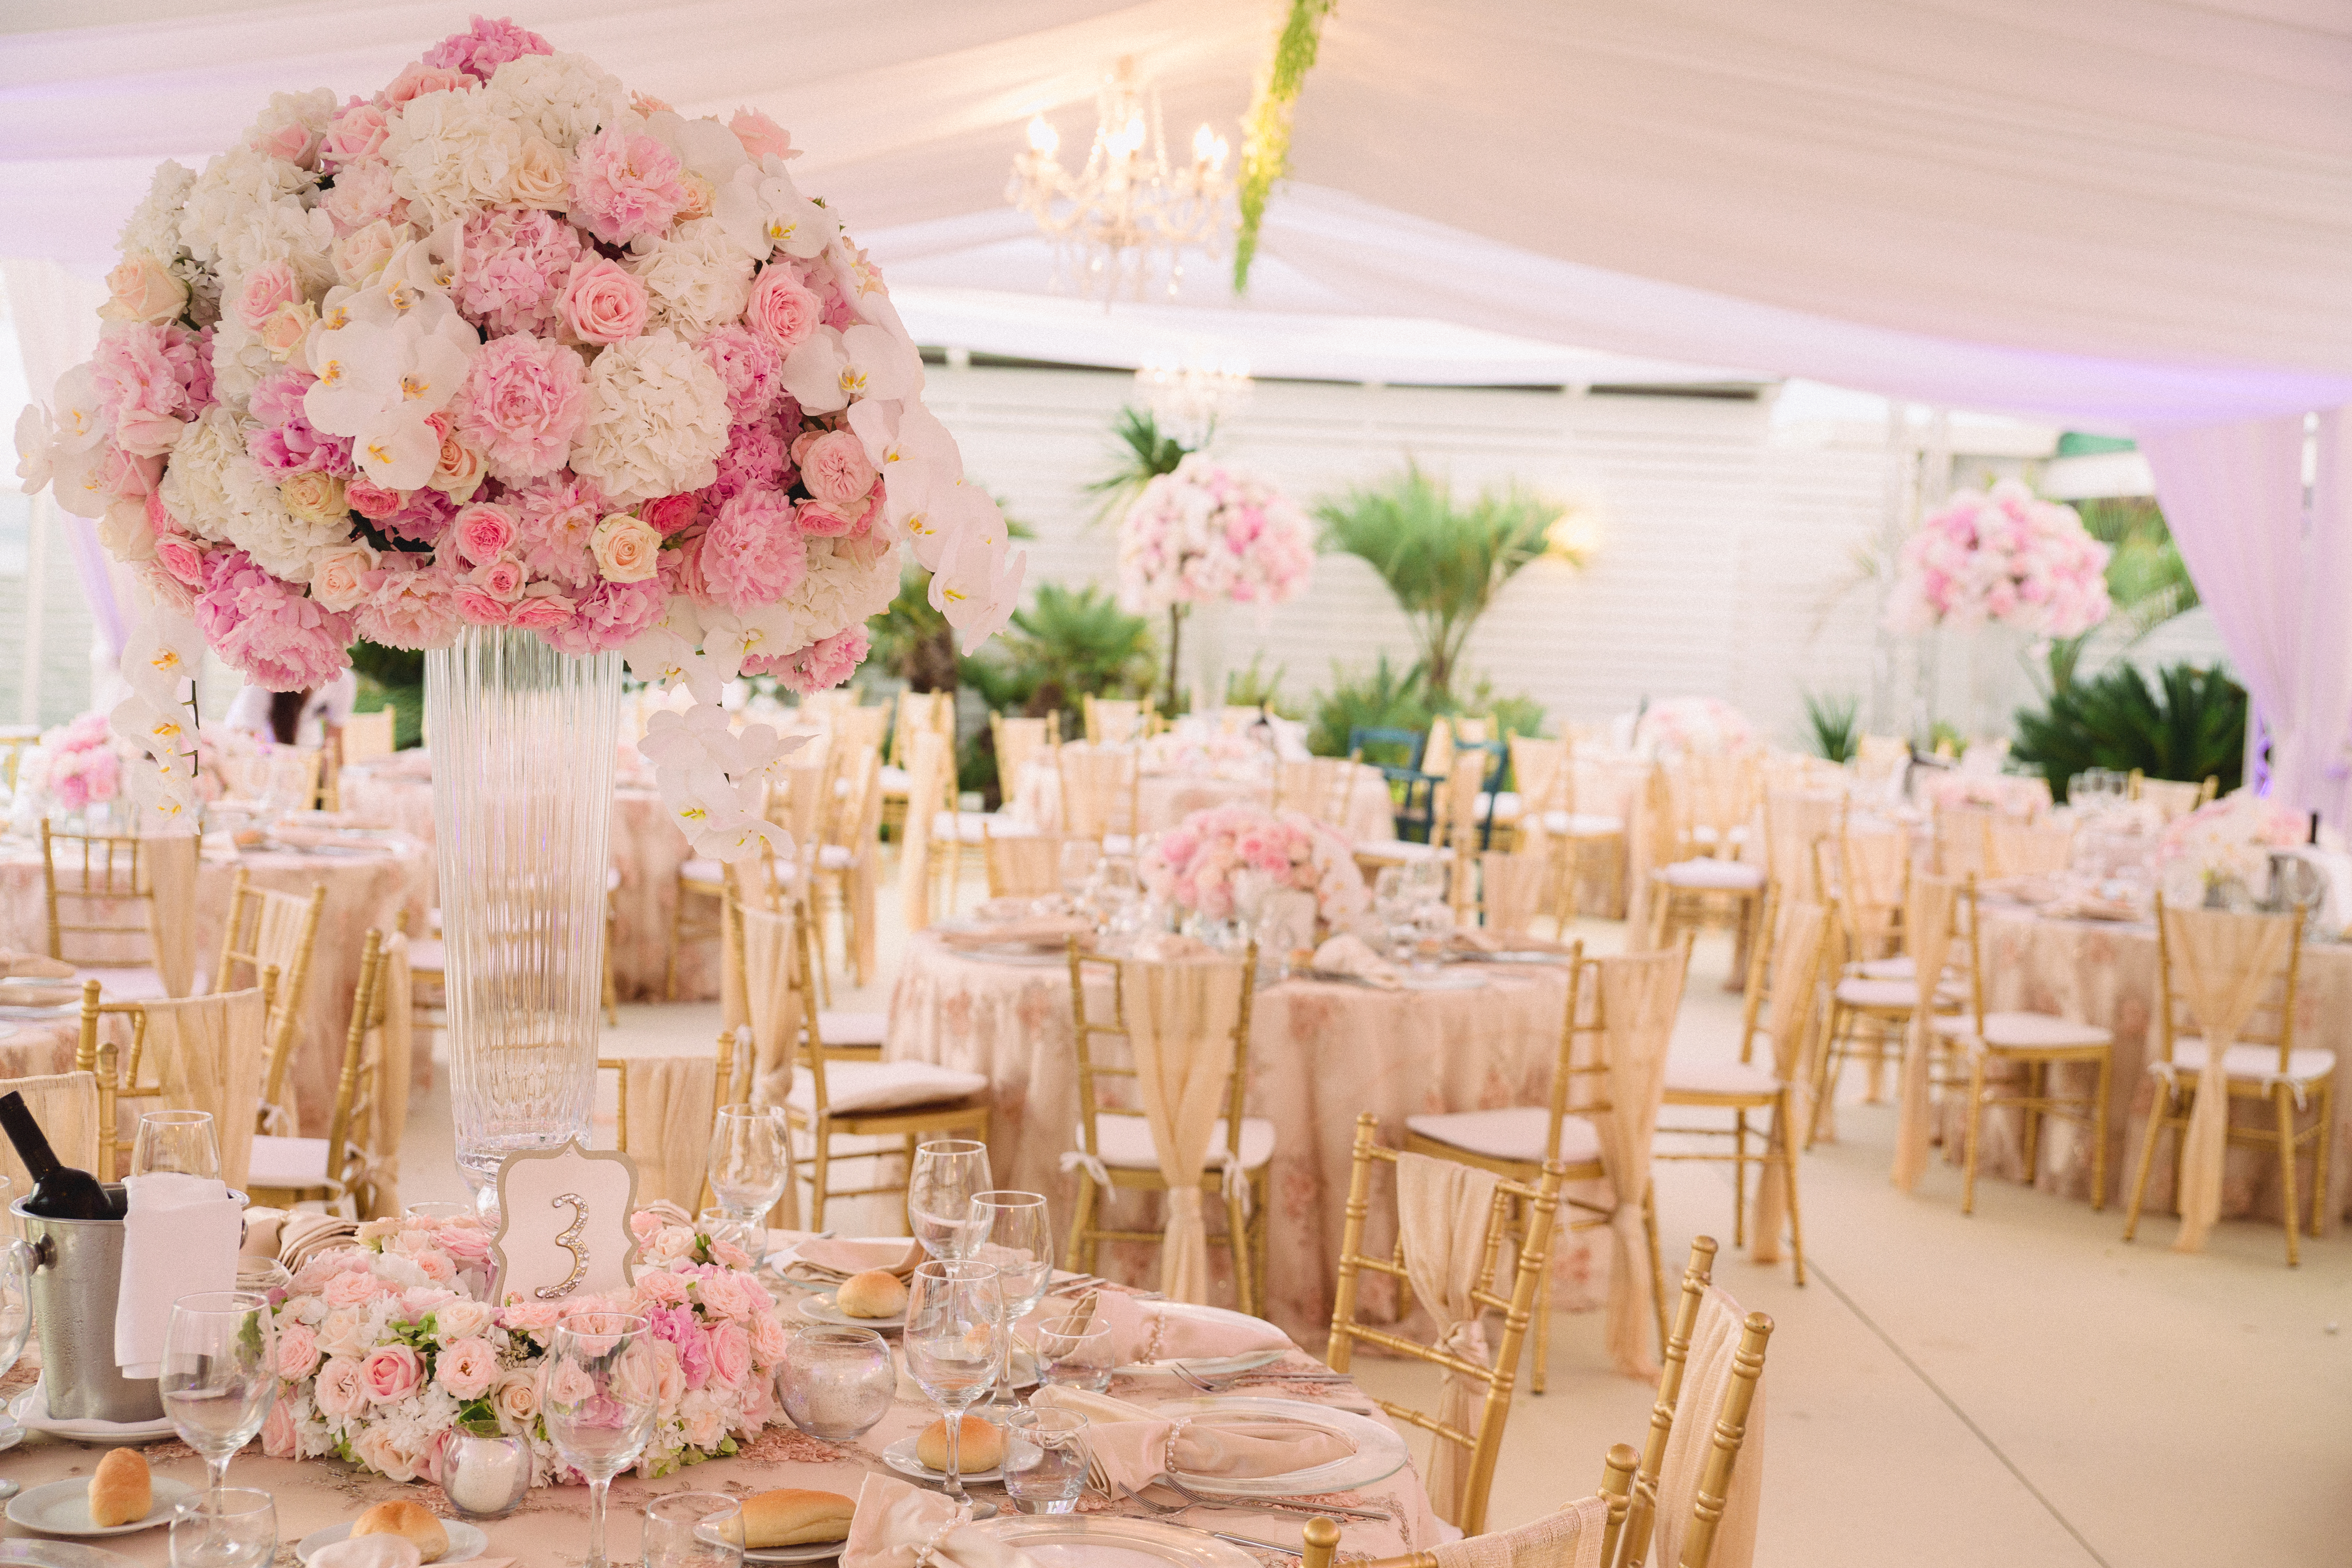 Art_of_Perfection_Event_Design_Luxury_Destination_Wedding_Planner_Italy_Pink_Flower